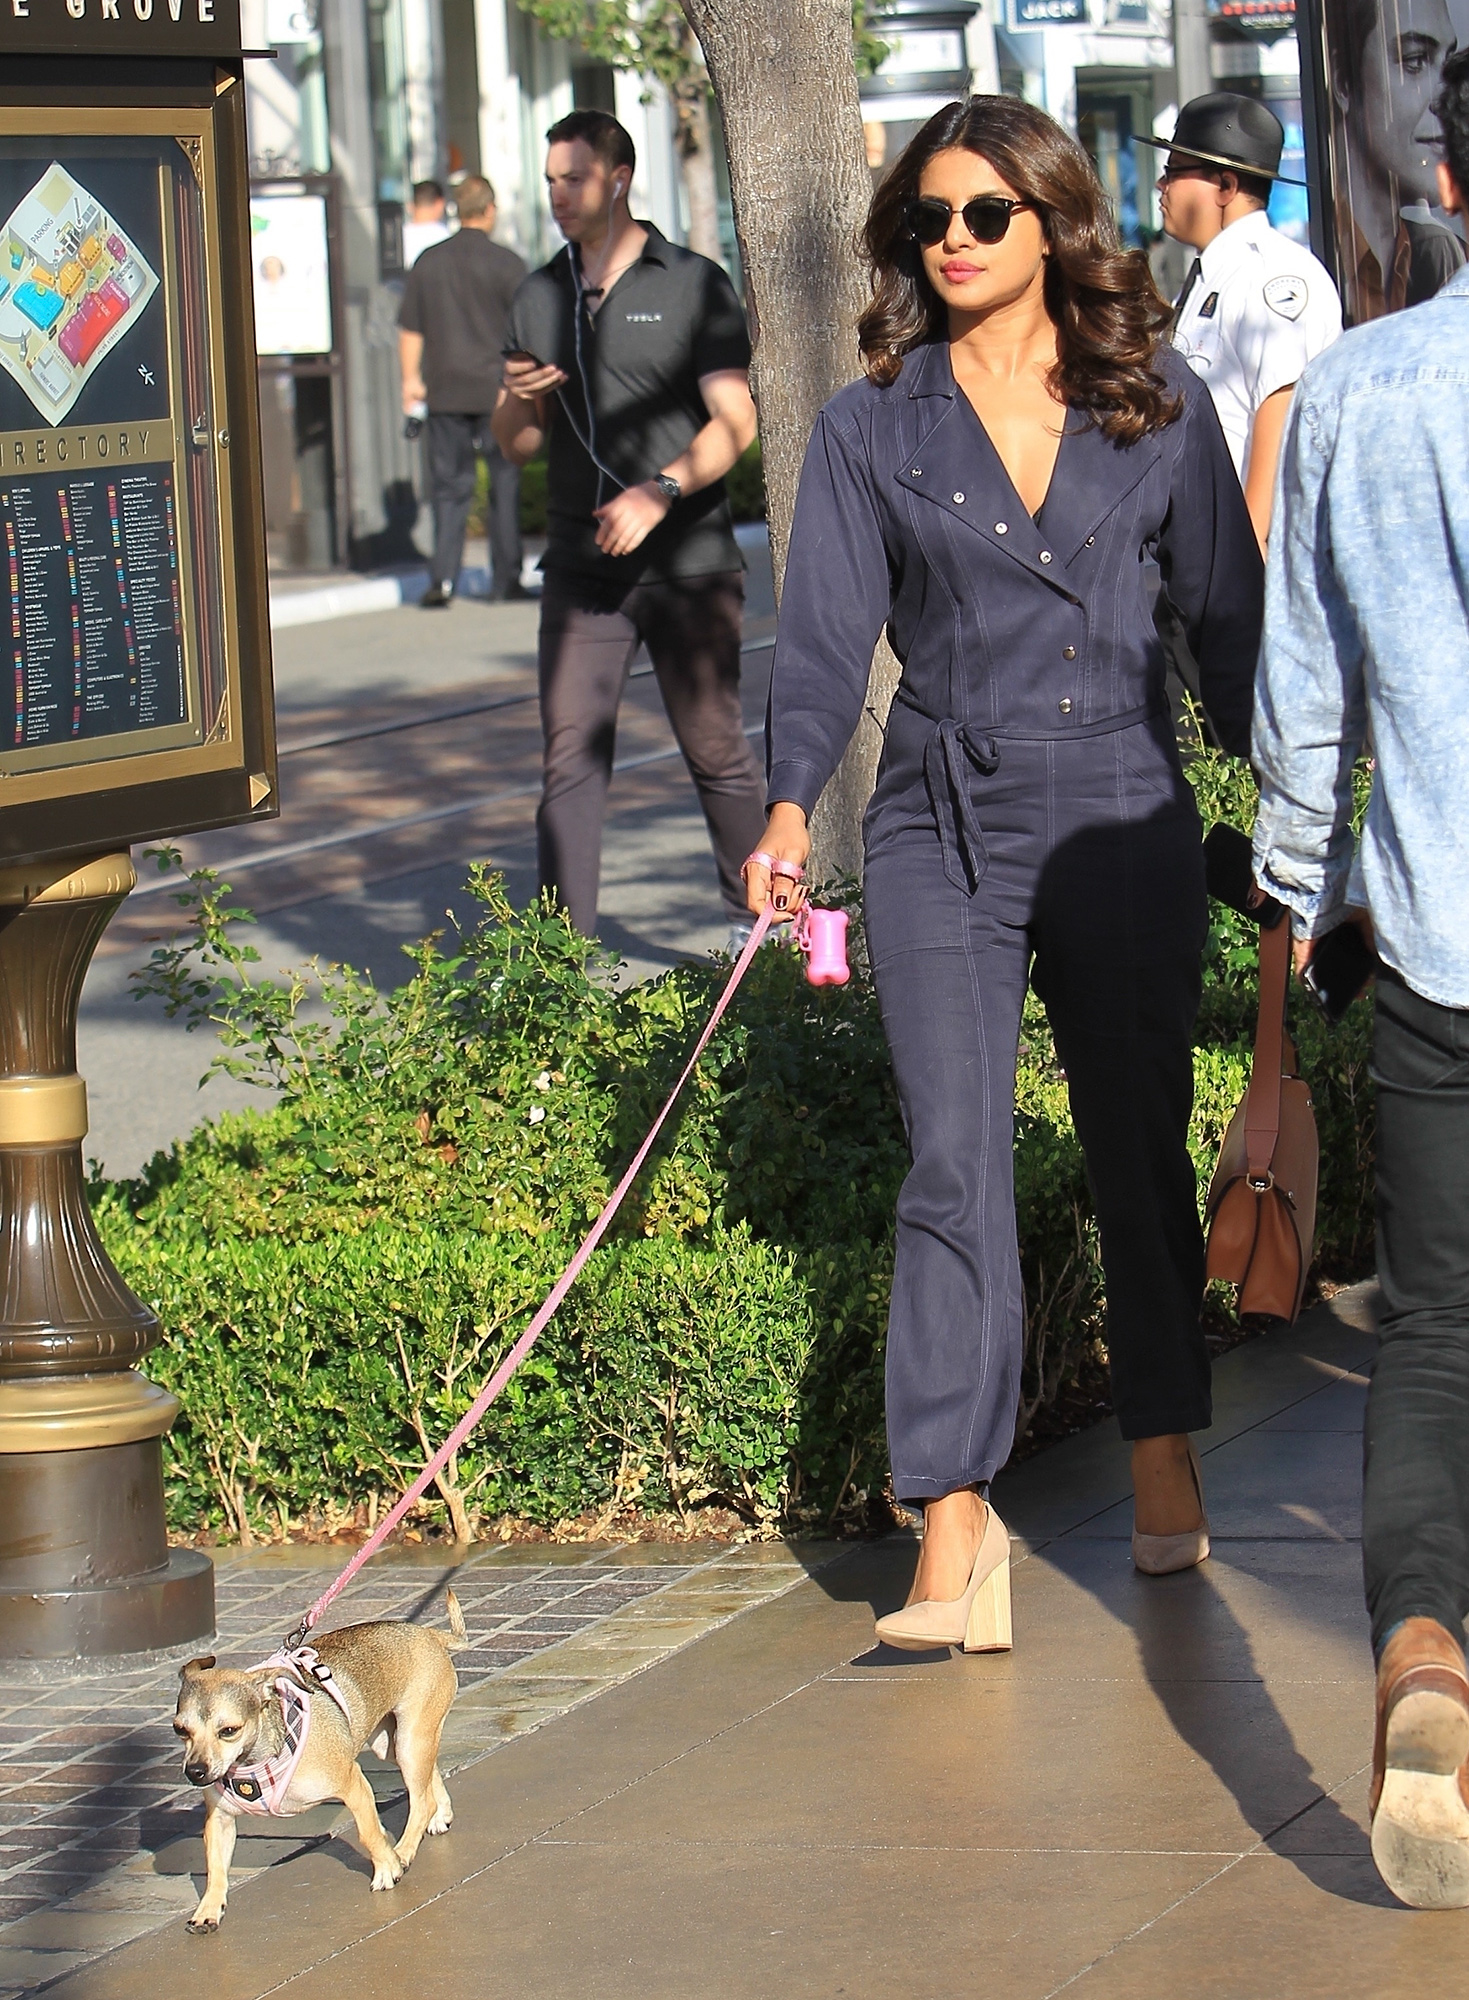 *EXCLUSIVE* Priyanka Chopra takes her Instagram famous dog, Diana, to The Grove